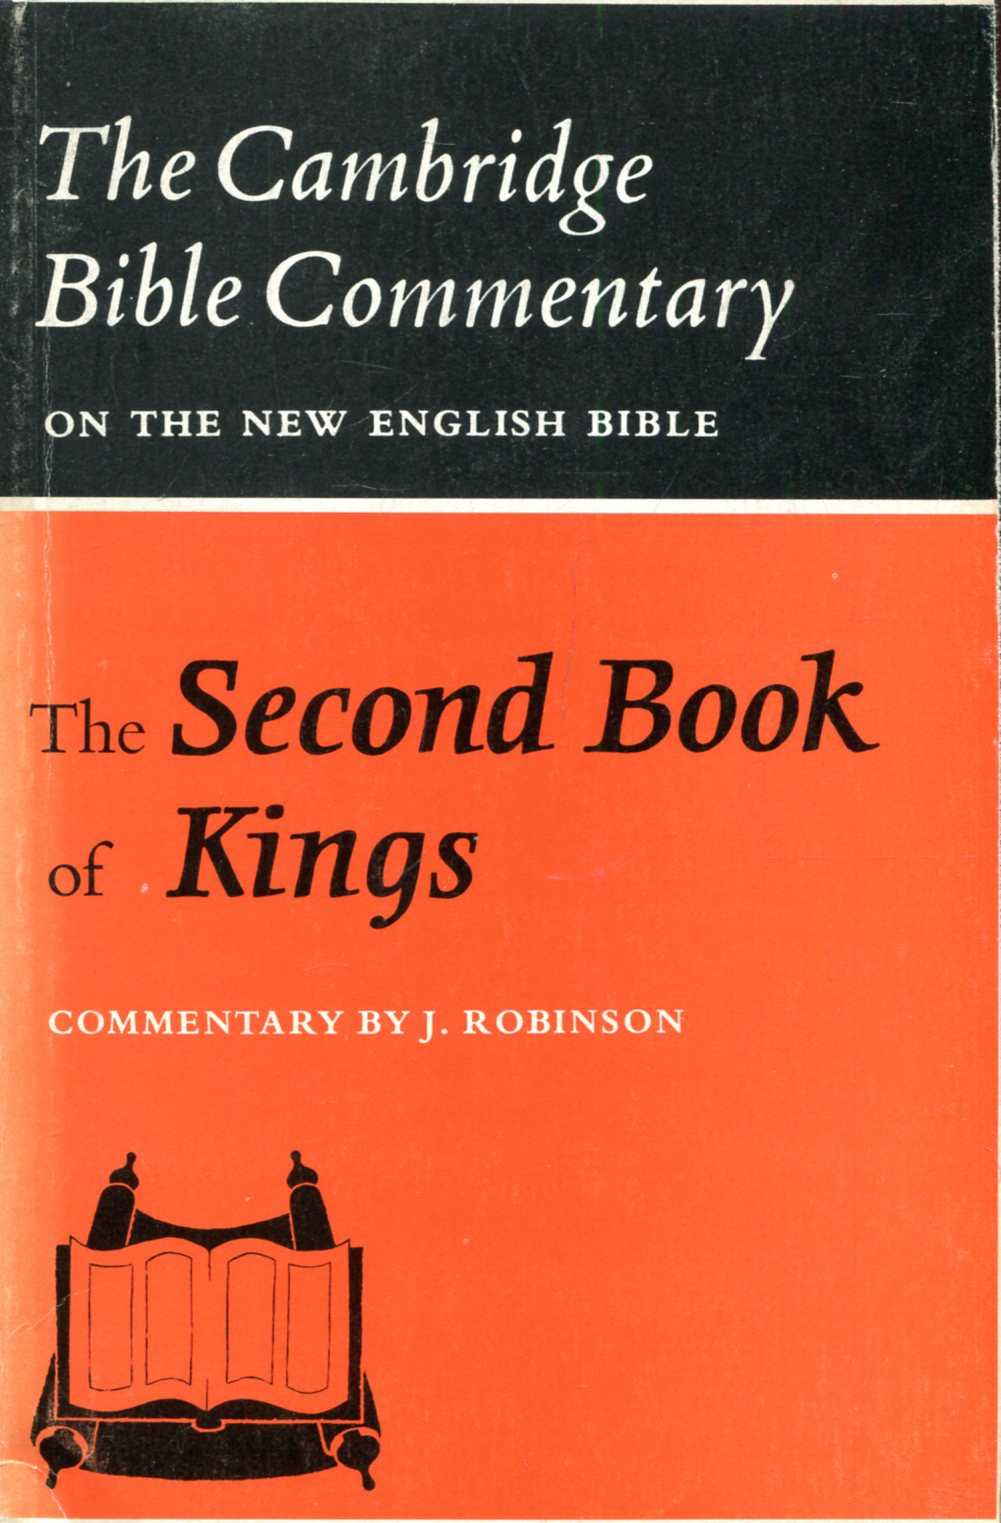 Image for The Second Book of Kings (The Cambridge Bible Commentaries on the New English Bible)